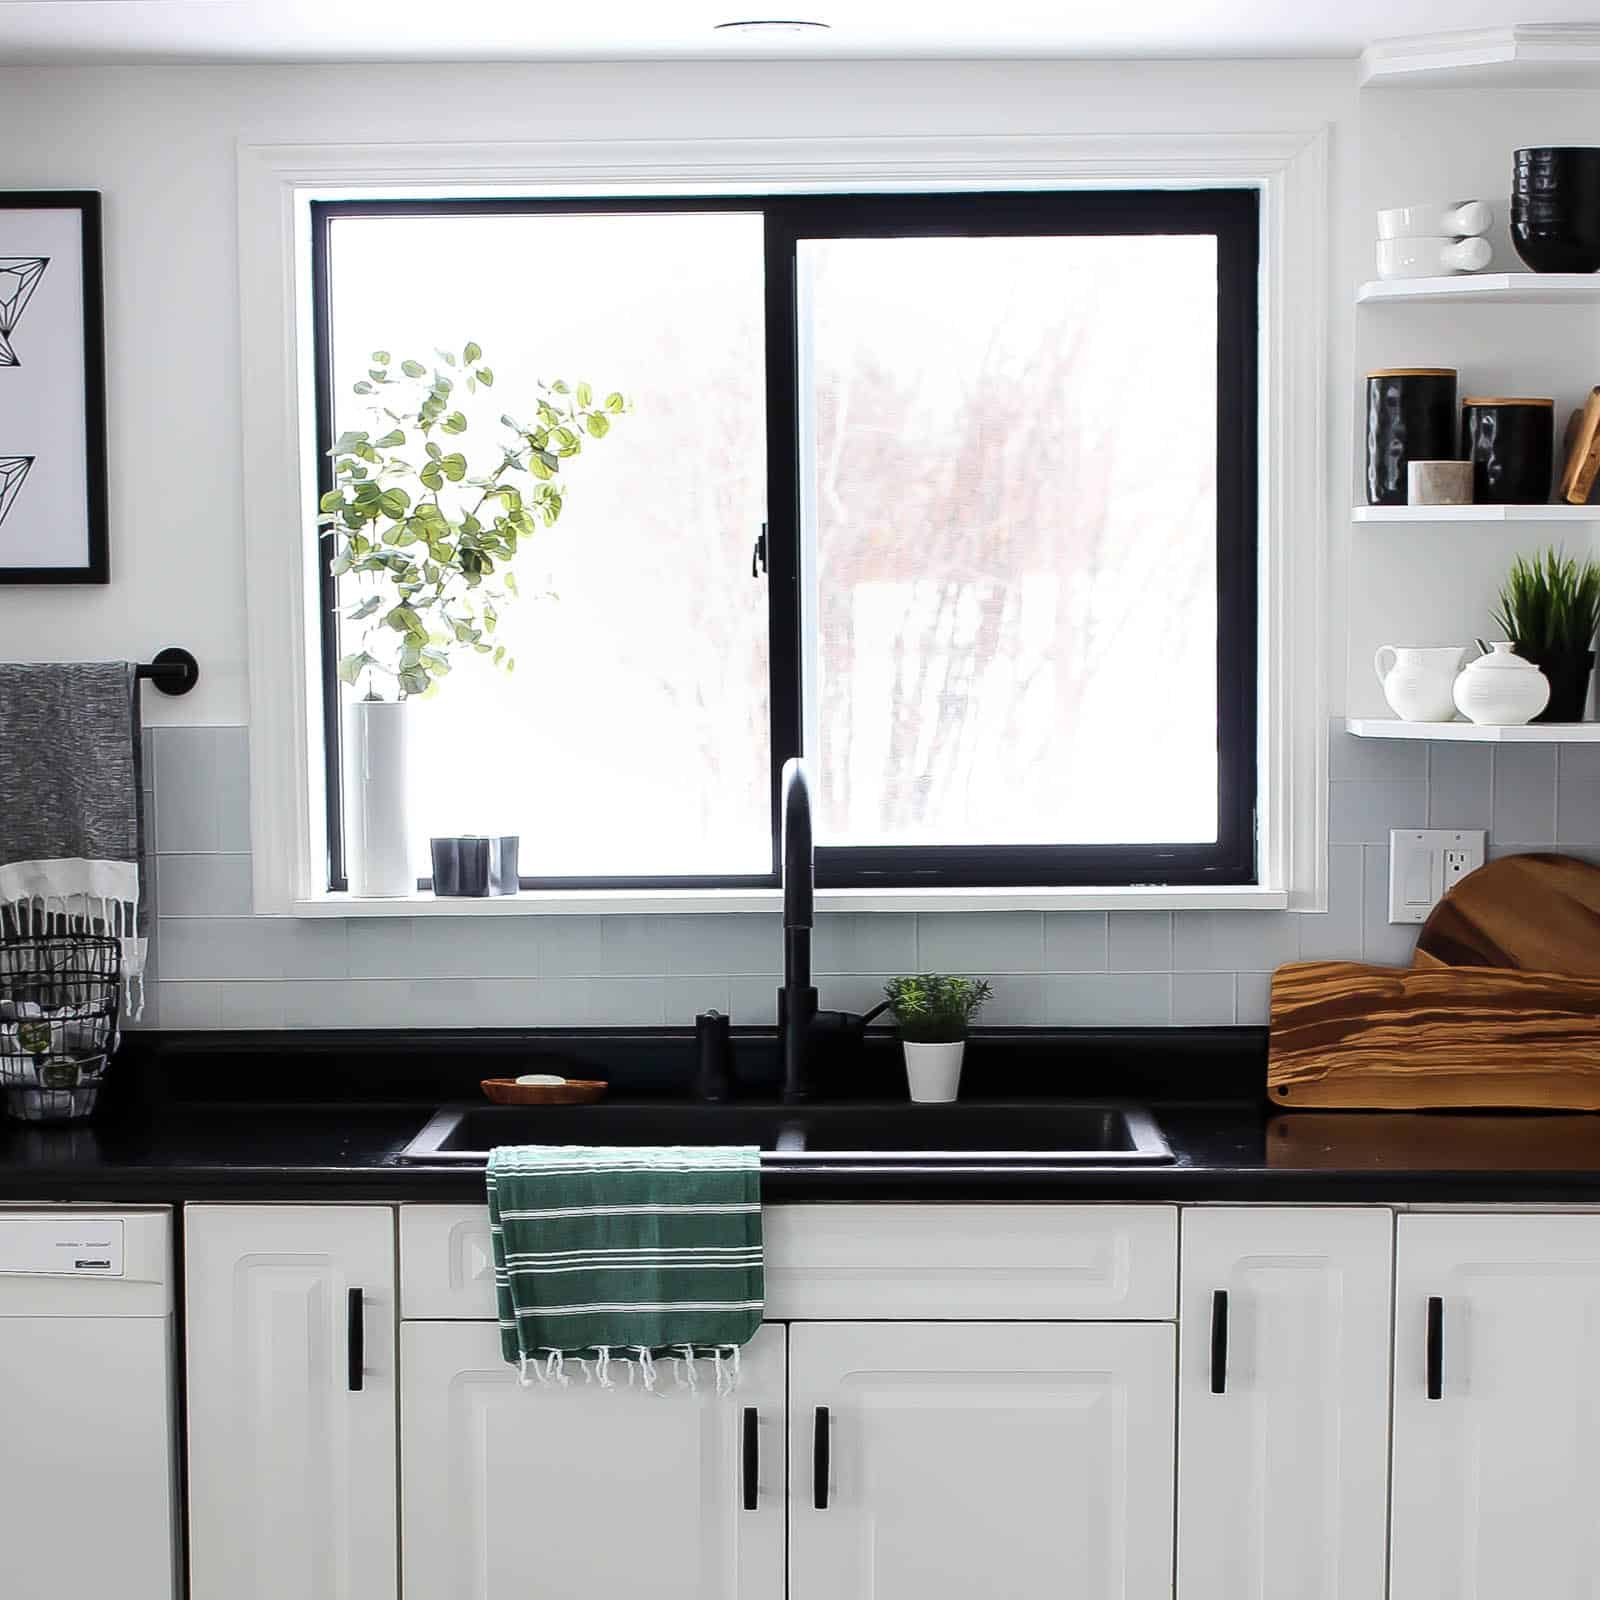 DIY Painted Black Window Frames